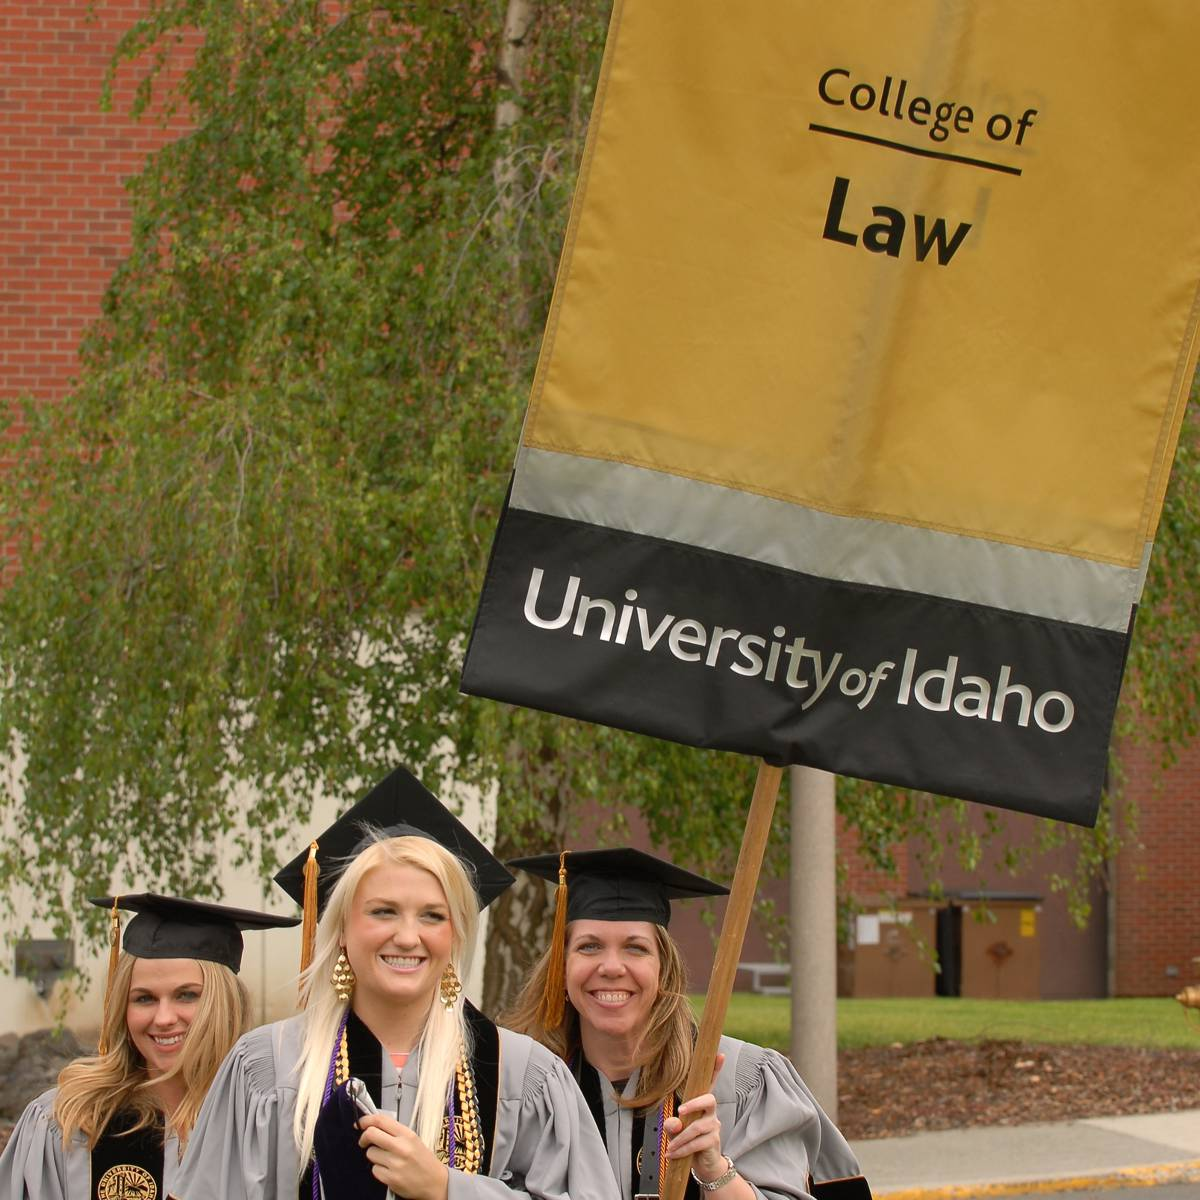 The law grads of UI, class of 2015.